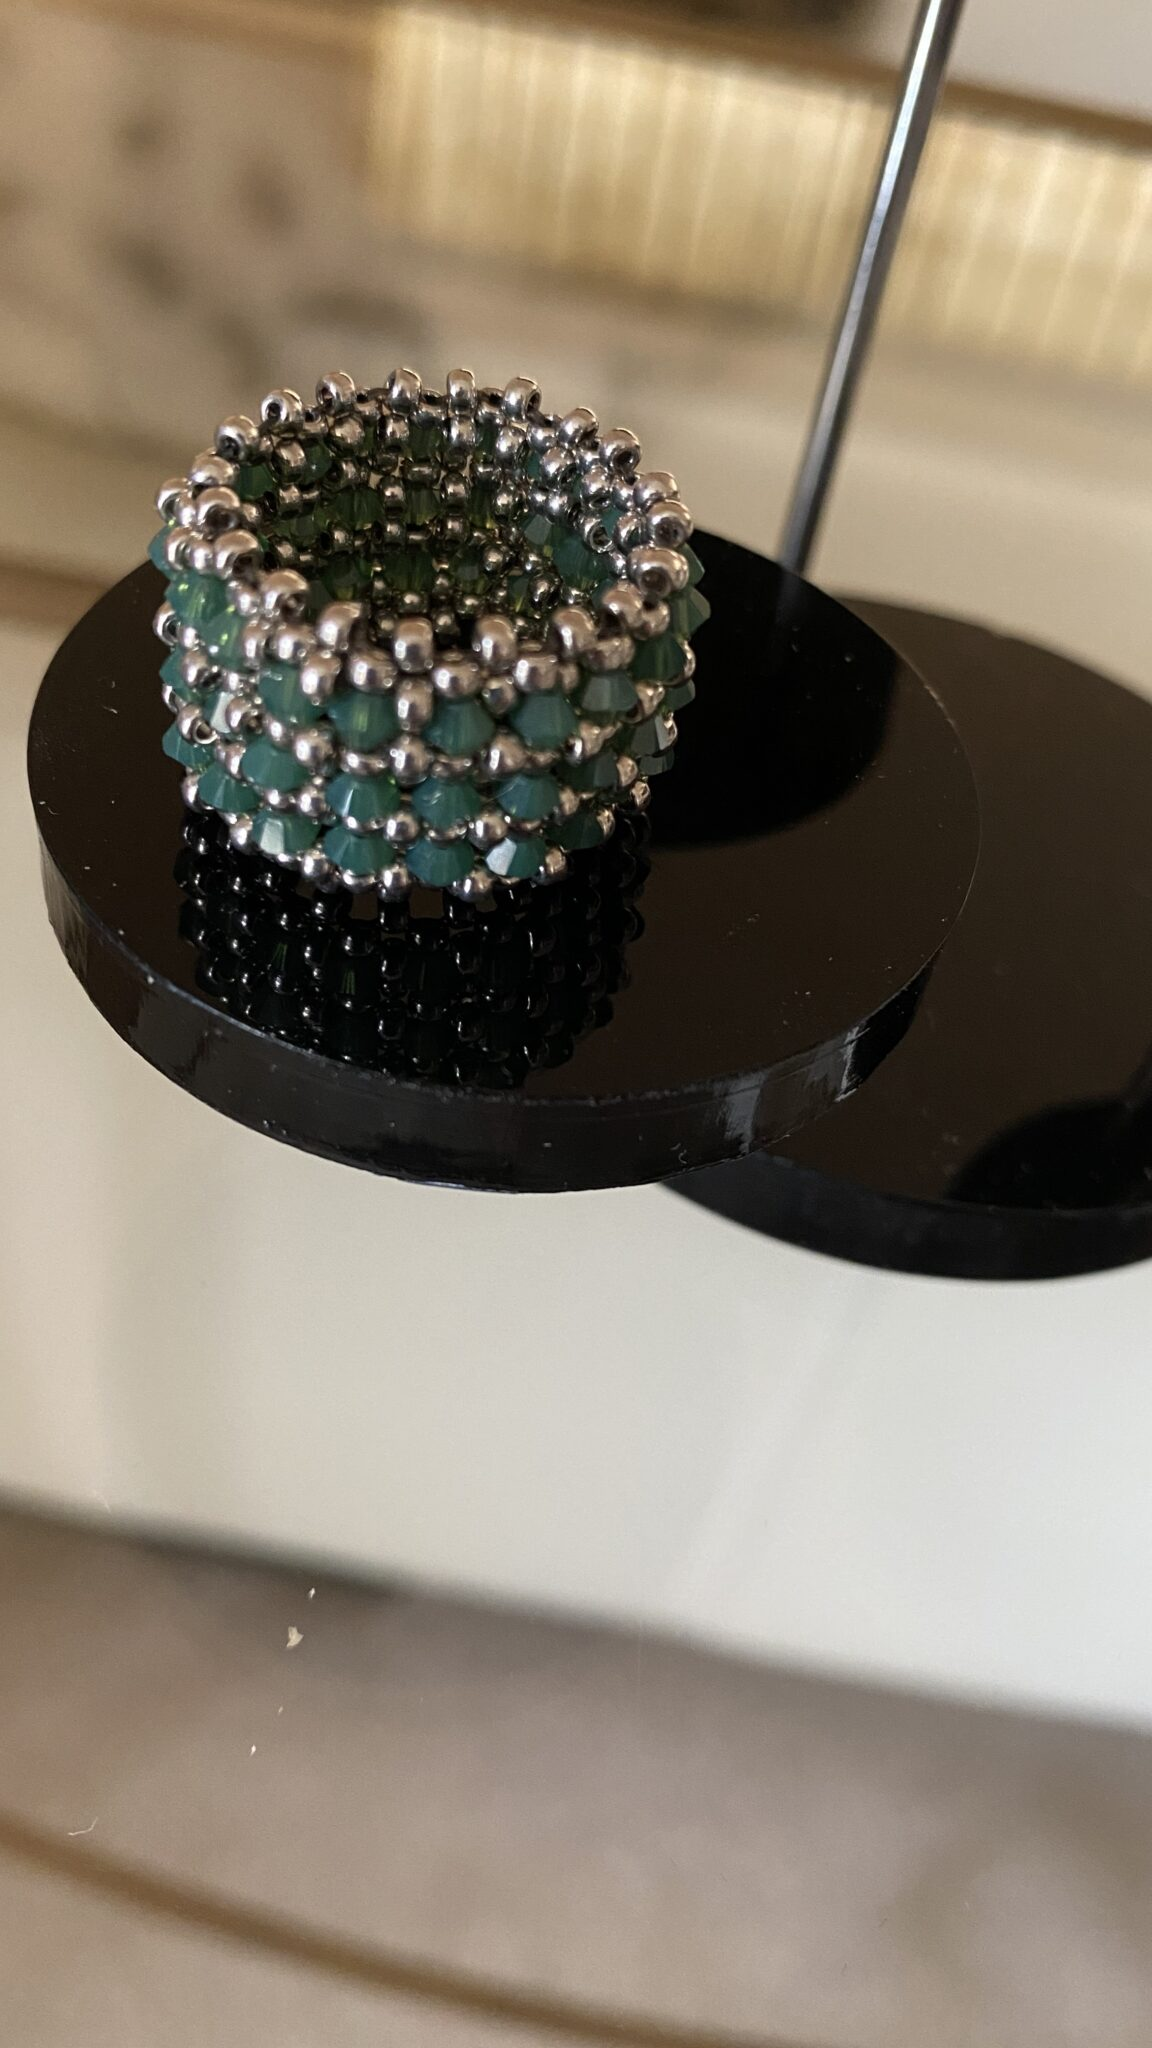 Palladium Japanese Seed Beads And Swarovski Crystals Handwoven Ring By Covet And Desire